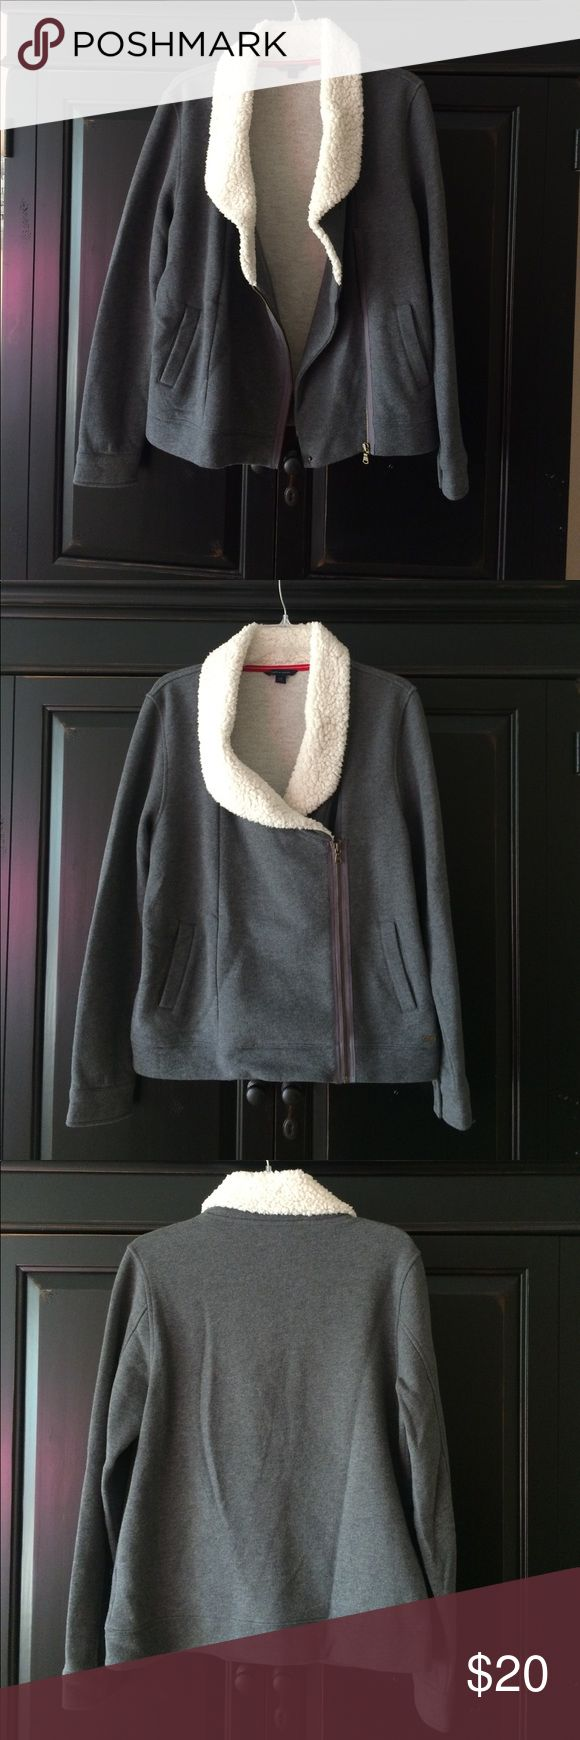 💚 Cozy sweatshirt by Tommy Hilfiger 💚 This sweatshirt is so versatile! Can be worn zipped up and worn as more of a jacket or open. Looks darling with jeans or even over a dress. Entire interior is soft, cozy, and fleece lined. This has never been worn or washed, literally brand new and in perfect condition. Beautiful dark grey color and fleece collar is cream. Tommy Hilfiger Tops Sweatshirts & Hoodies